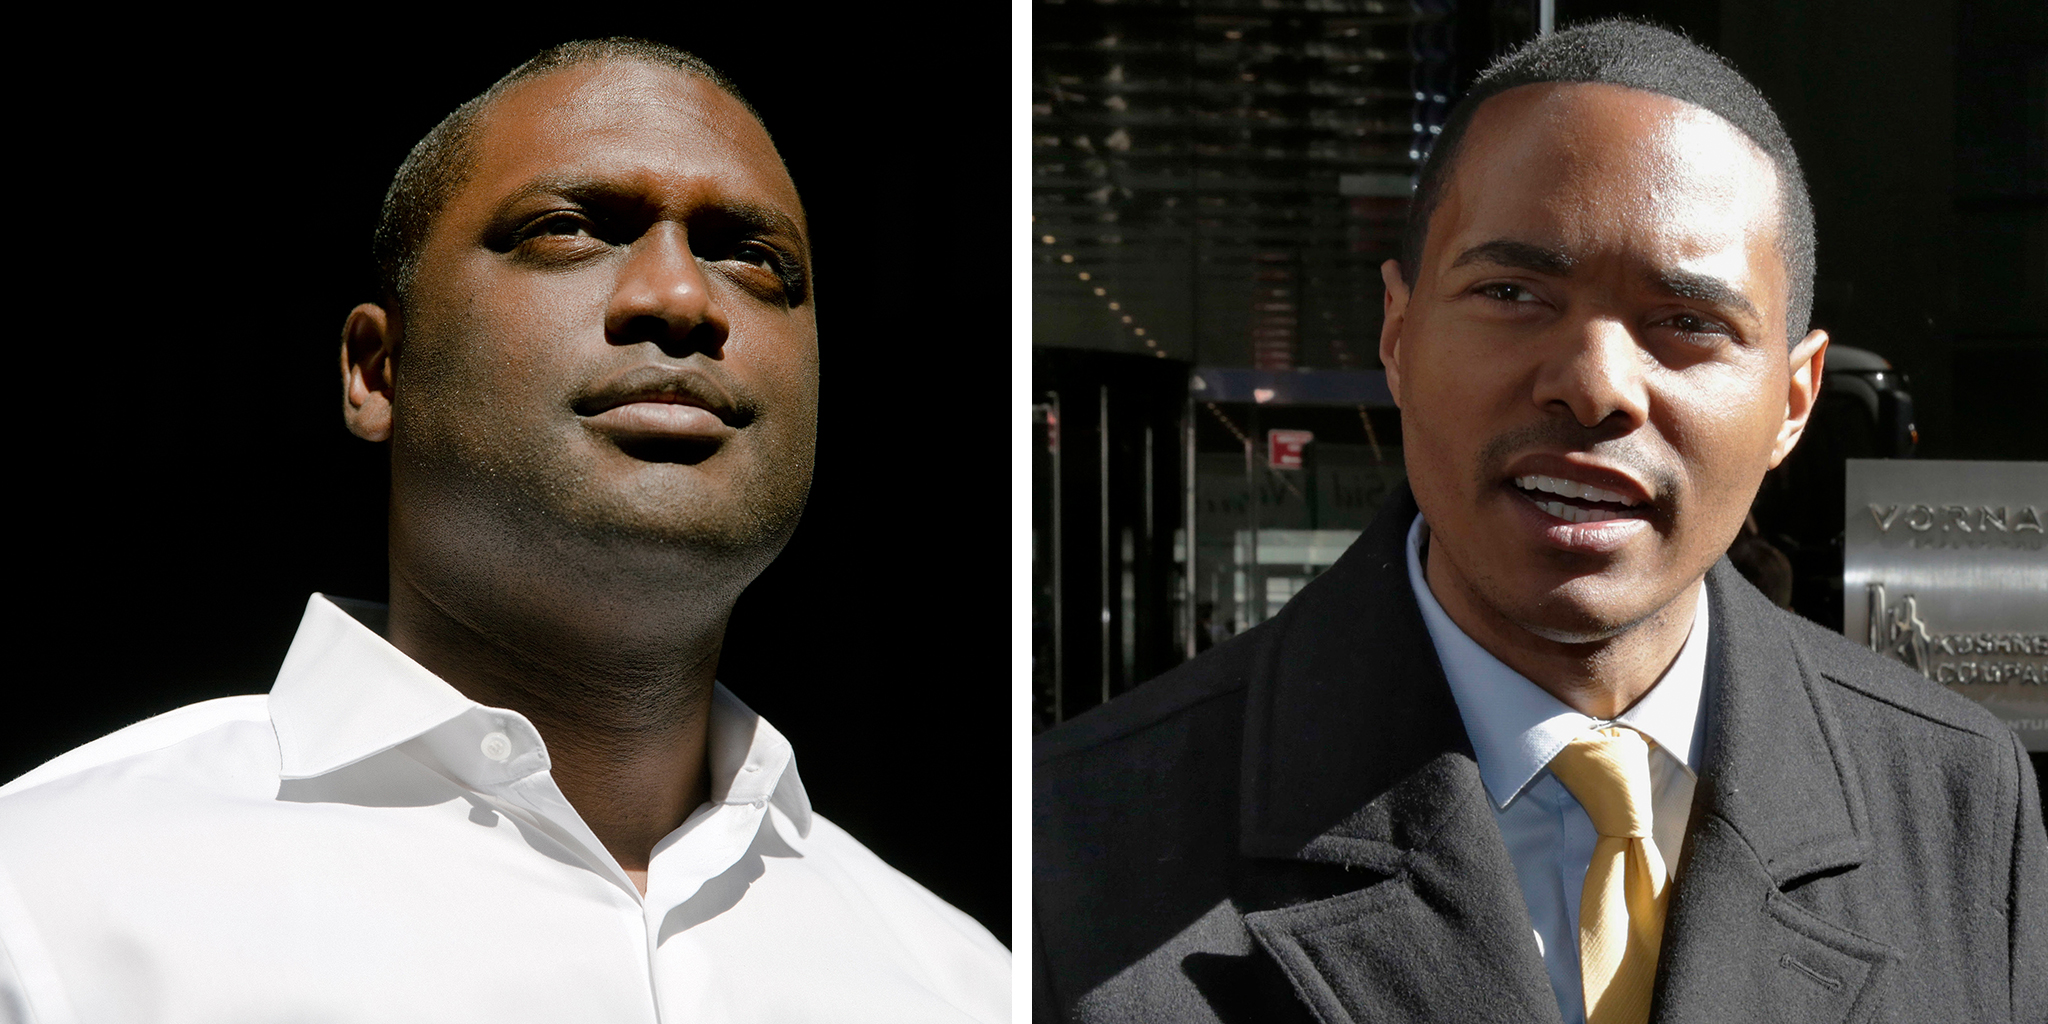 This has been long in coming candidates. 'Two New York now ready first openly gay black men are the Afro-Latinos in Congress